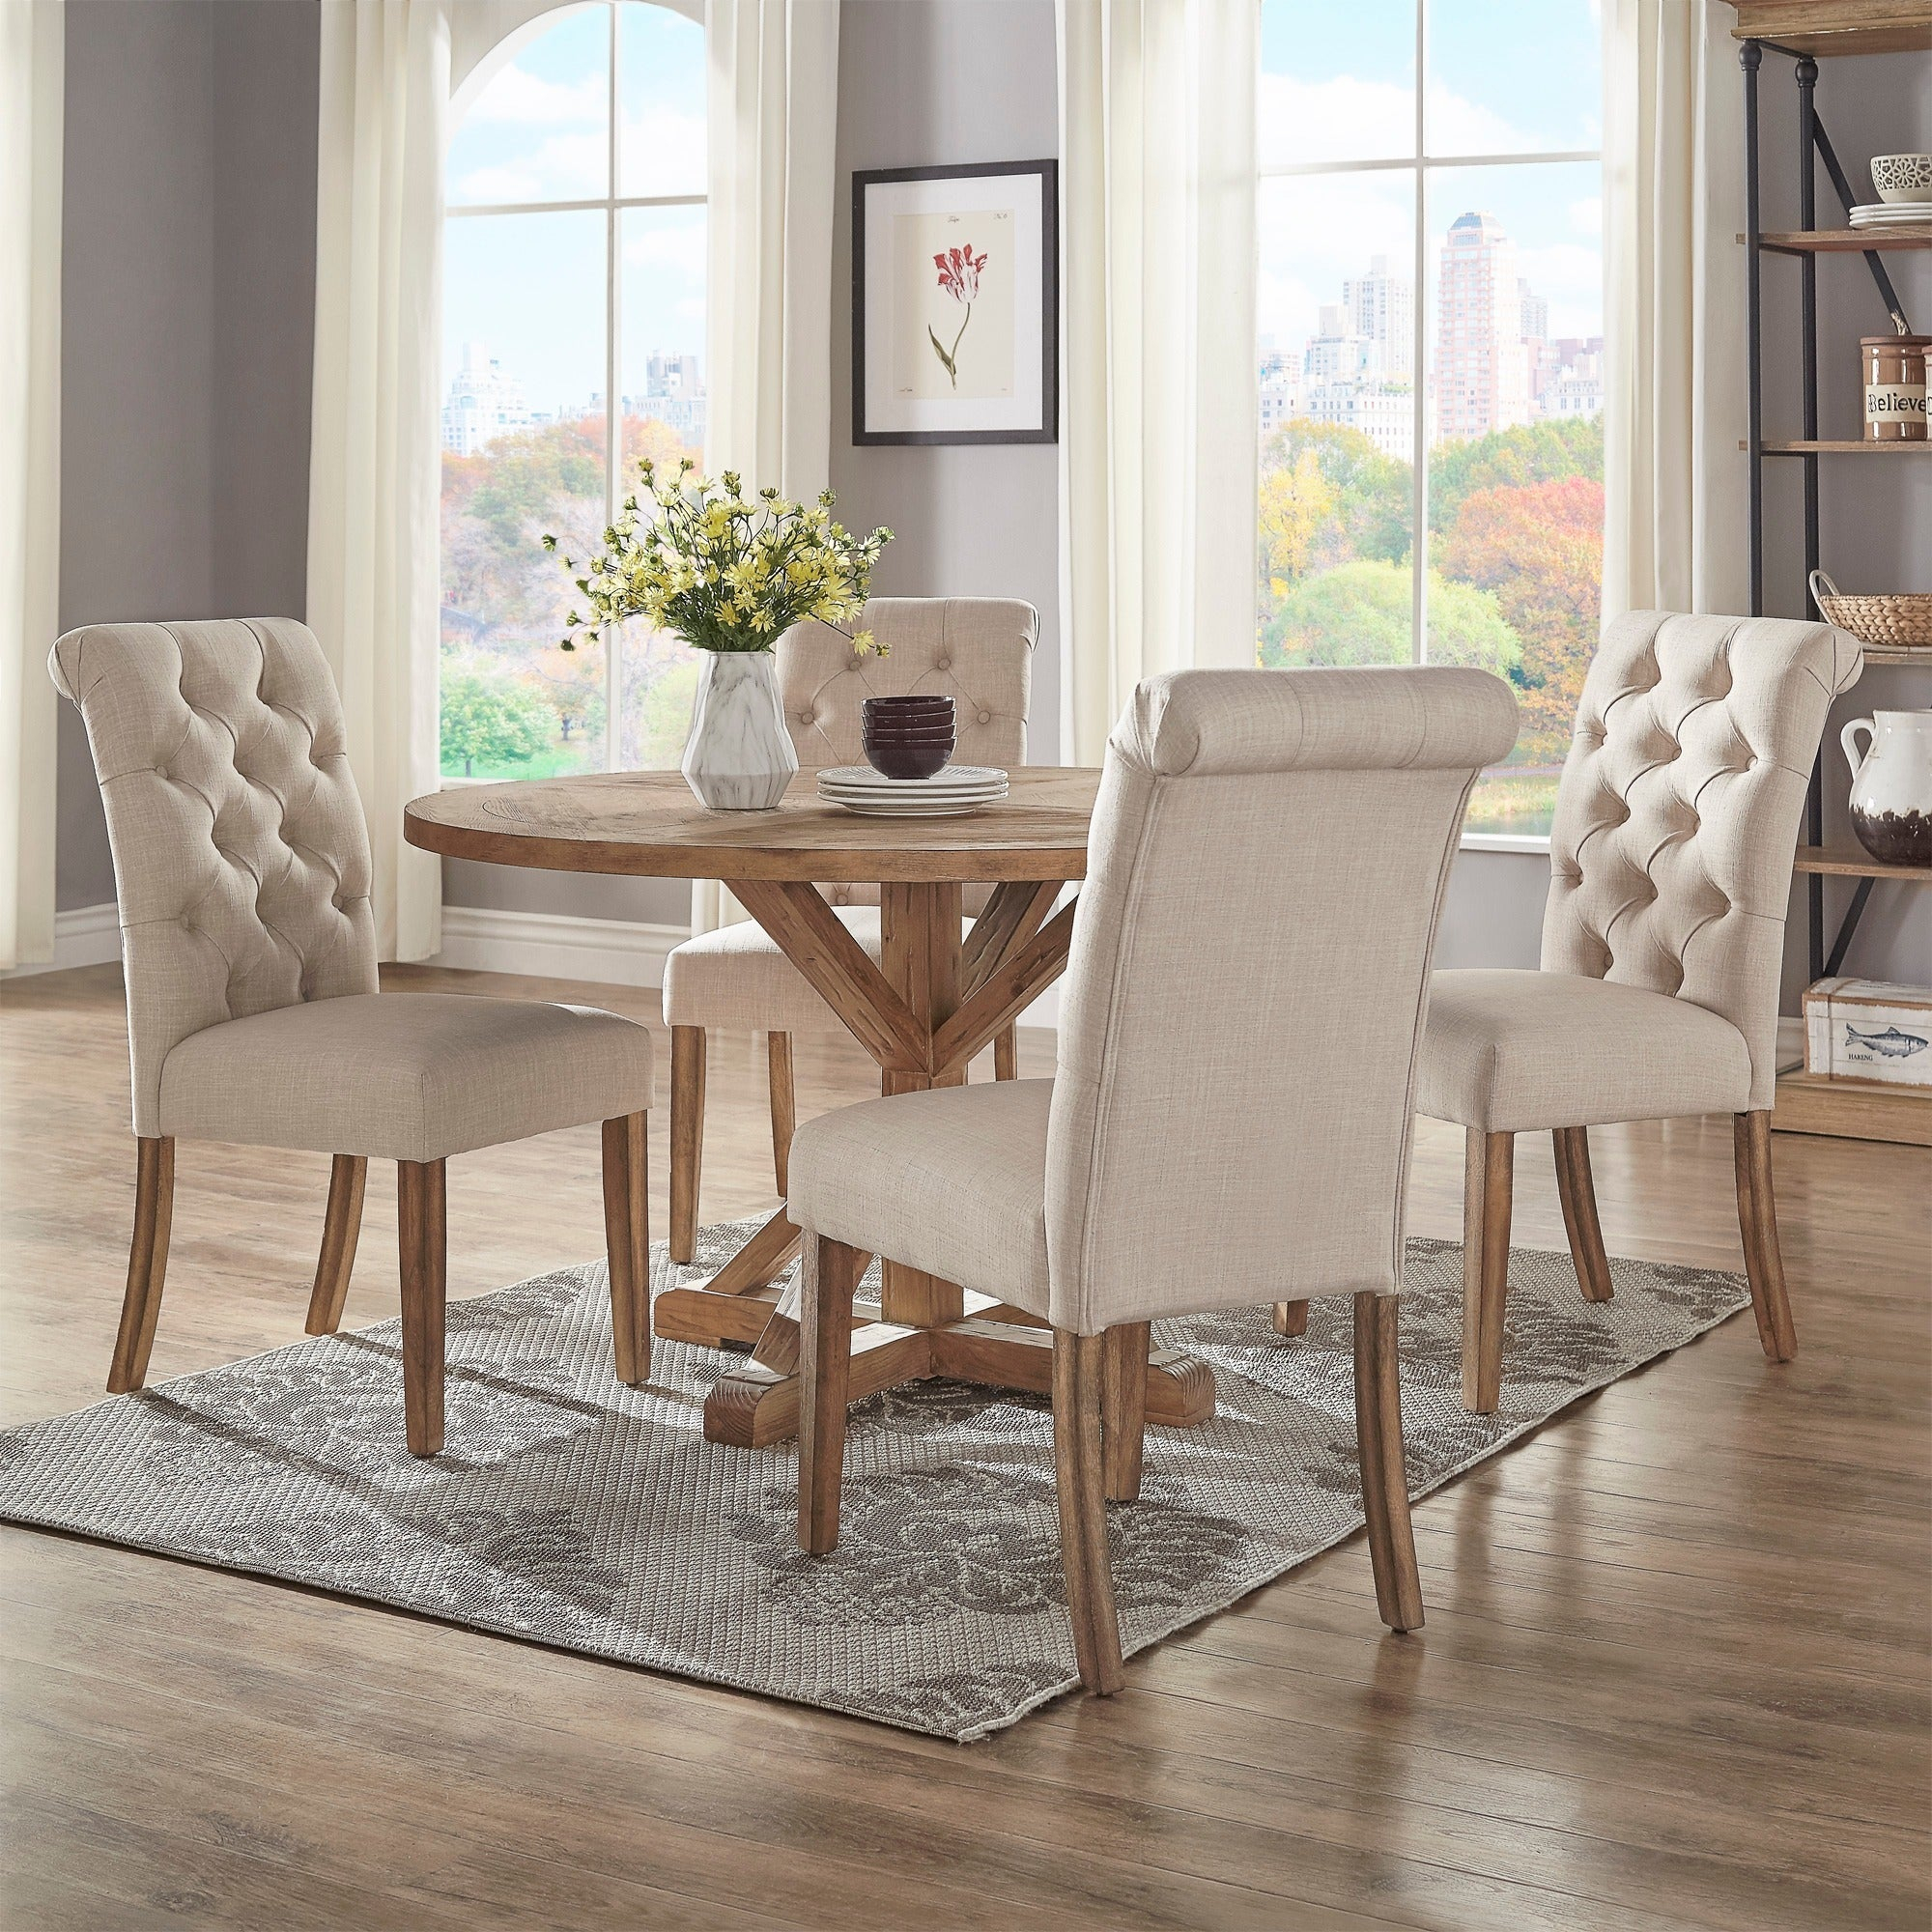 Benchwright Rustic X Base 48 Inch Round Dining Table Setinspire Q Artisan With Regard To 2018 Gray Wash Benchwright Dining Tables (View 7 of 25)